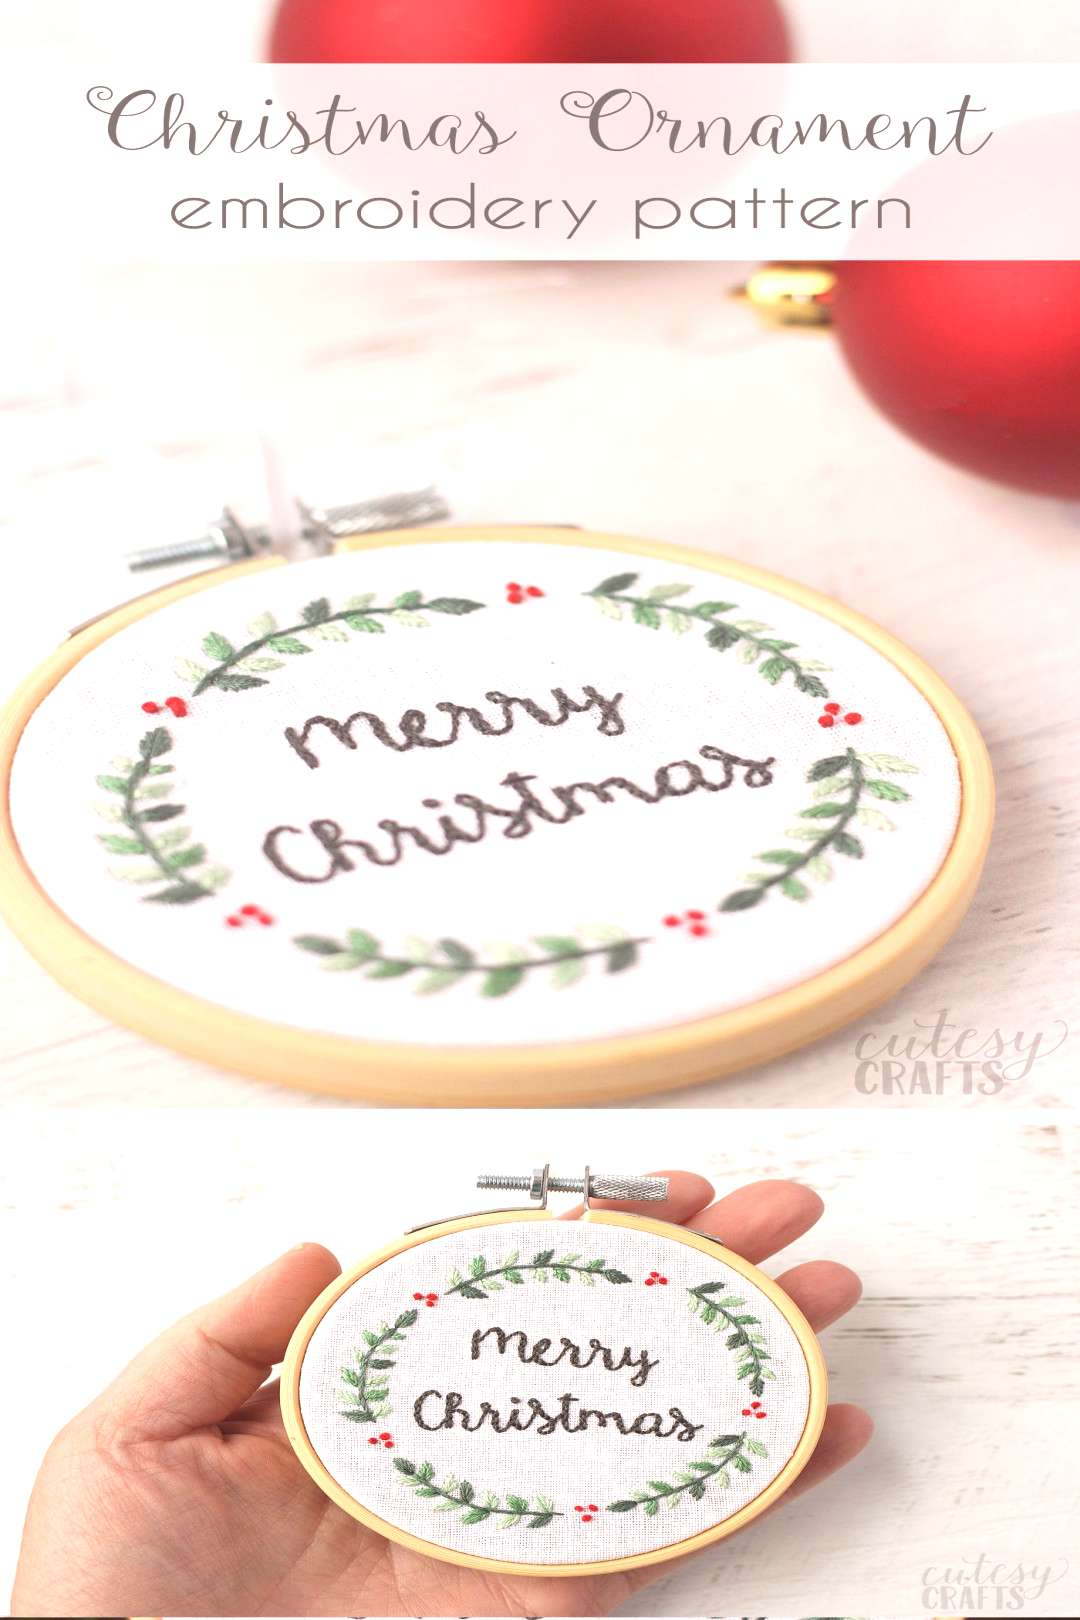 Free Christmas Embroidery Pattern. Make a cute embroidery hoop Christmas ornament!